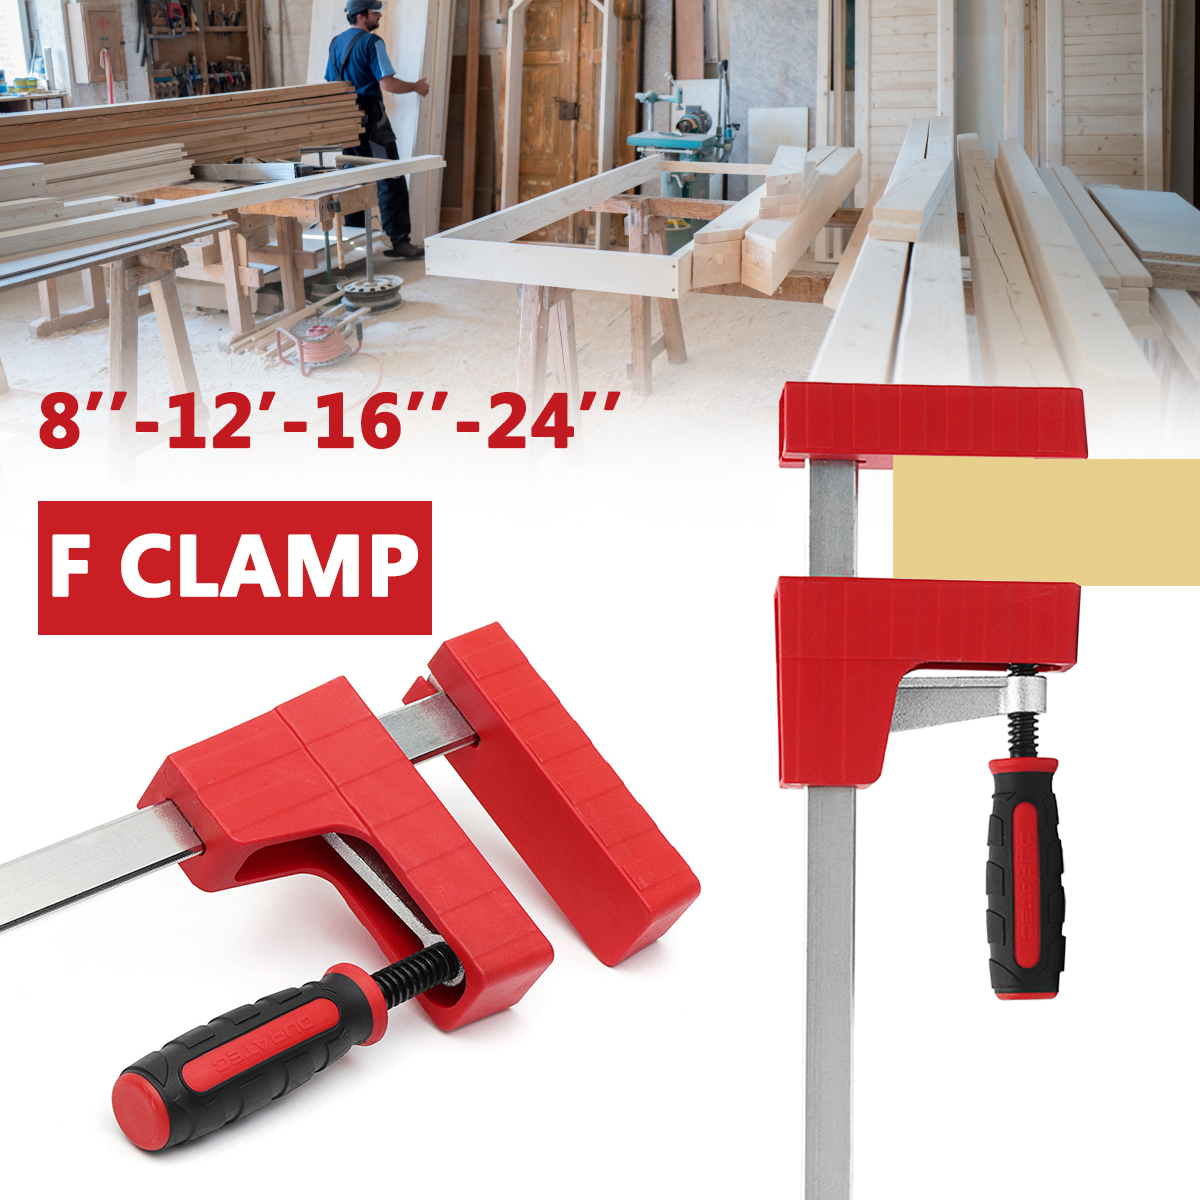 8/12/16/24 inch Heavy Duty F Clamp Parallel Tool 80mm Depth Adjustable DIY Woodworking Wood Clamping Carpenter Clamps Grip 1 2 3 inch g type woodworking clamp clamping device adjustable diy carpentry gadgets heavy duty g clamp